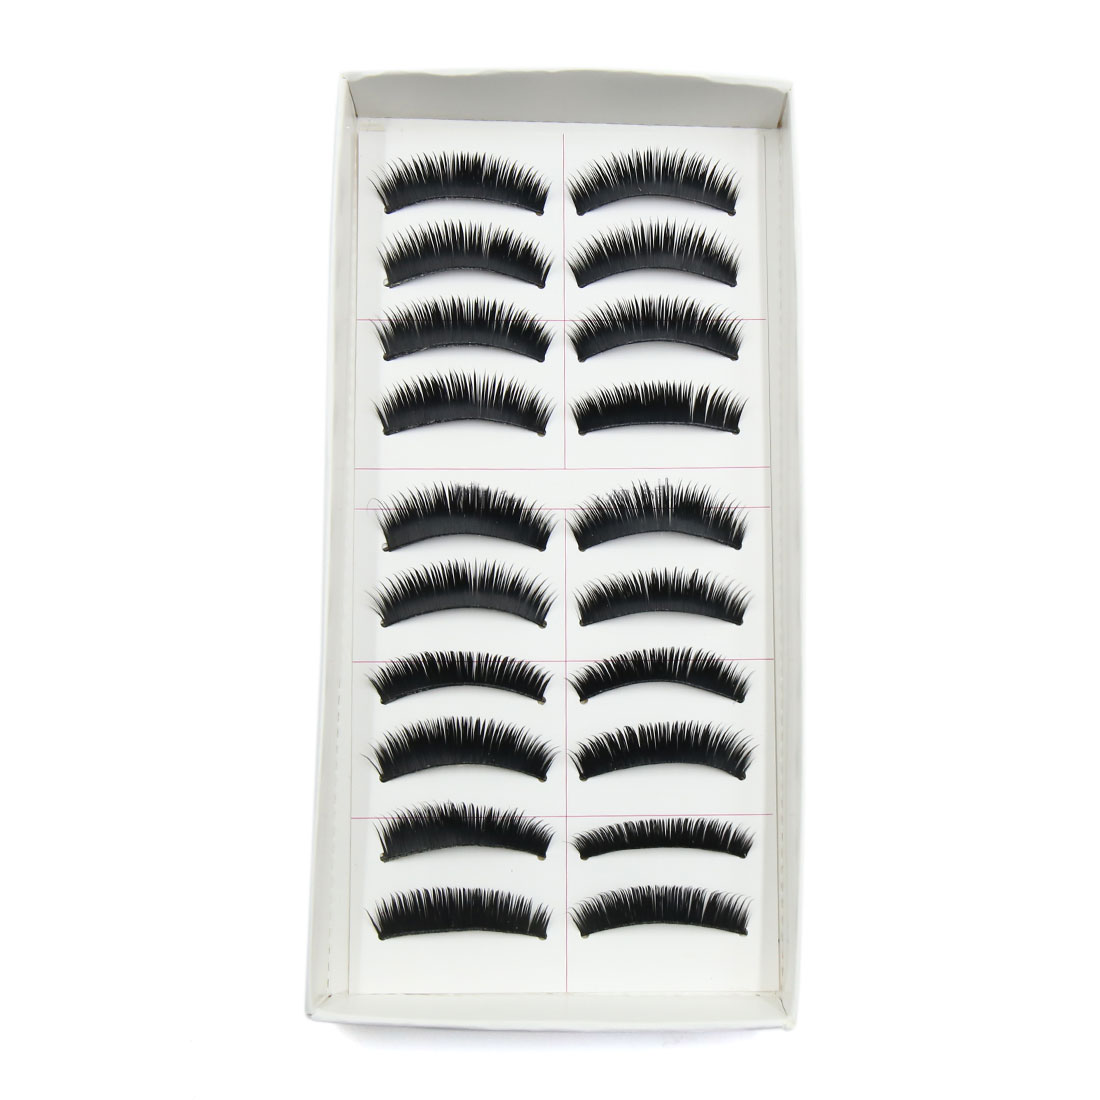 60 Pairs Soft False Eyelashes Extension Eyes Makeup Cosmetic Tool #5